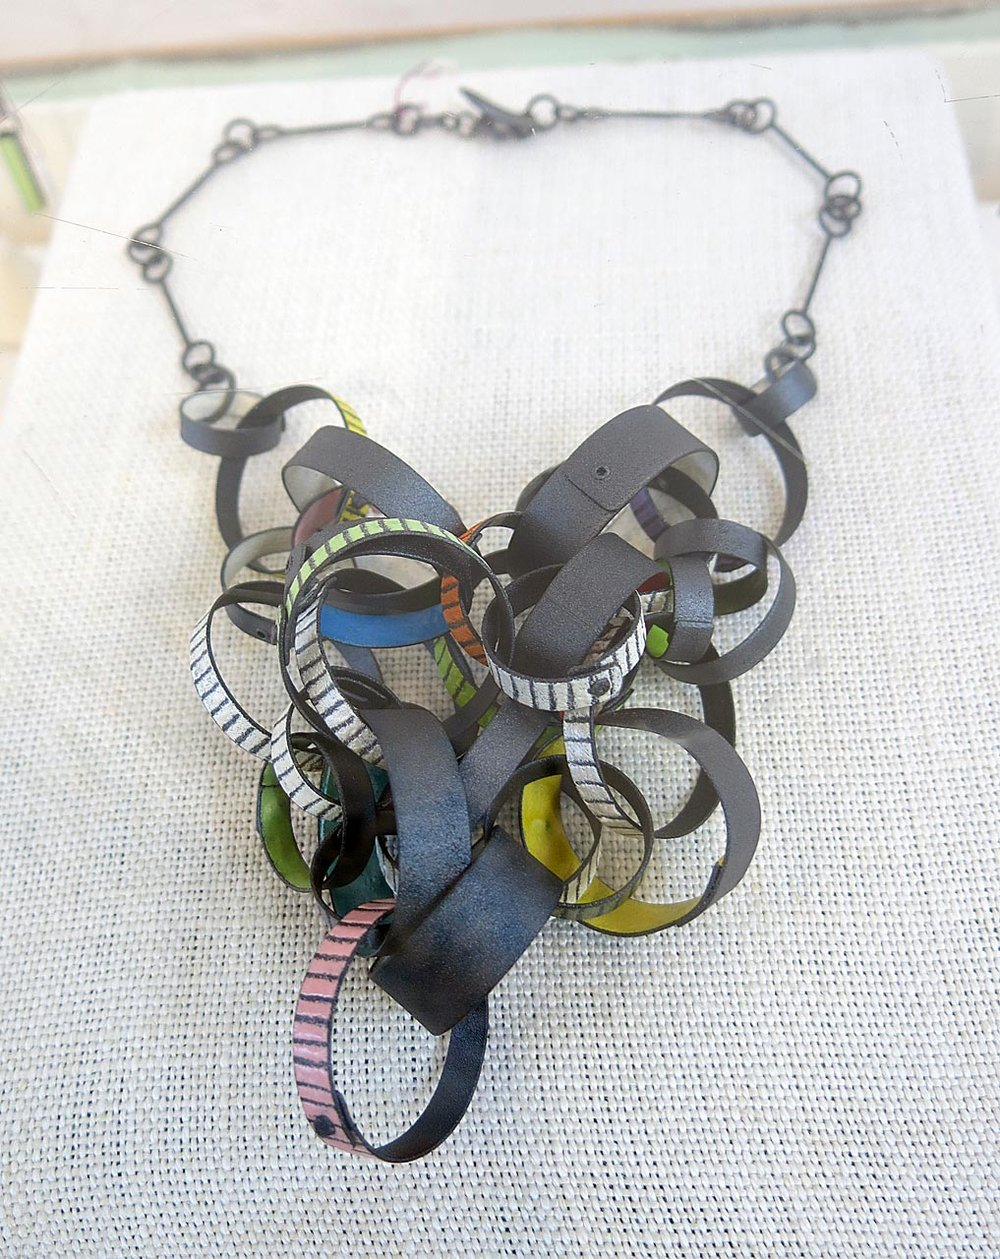 Necklace by Mary Filapek and Lou Ann Townsend.